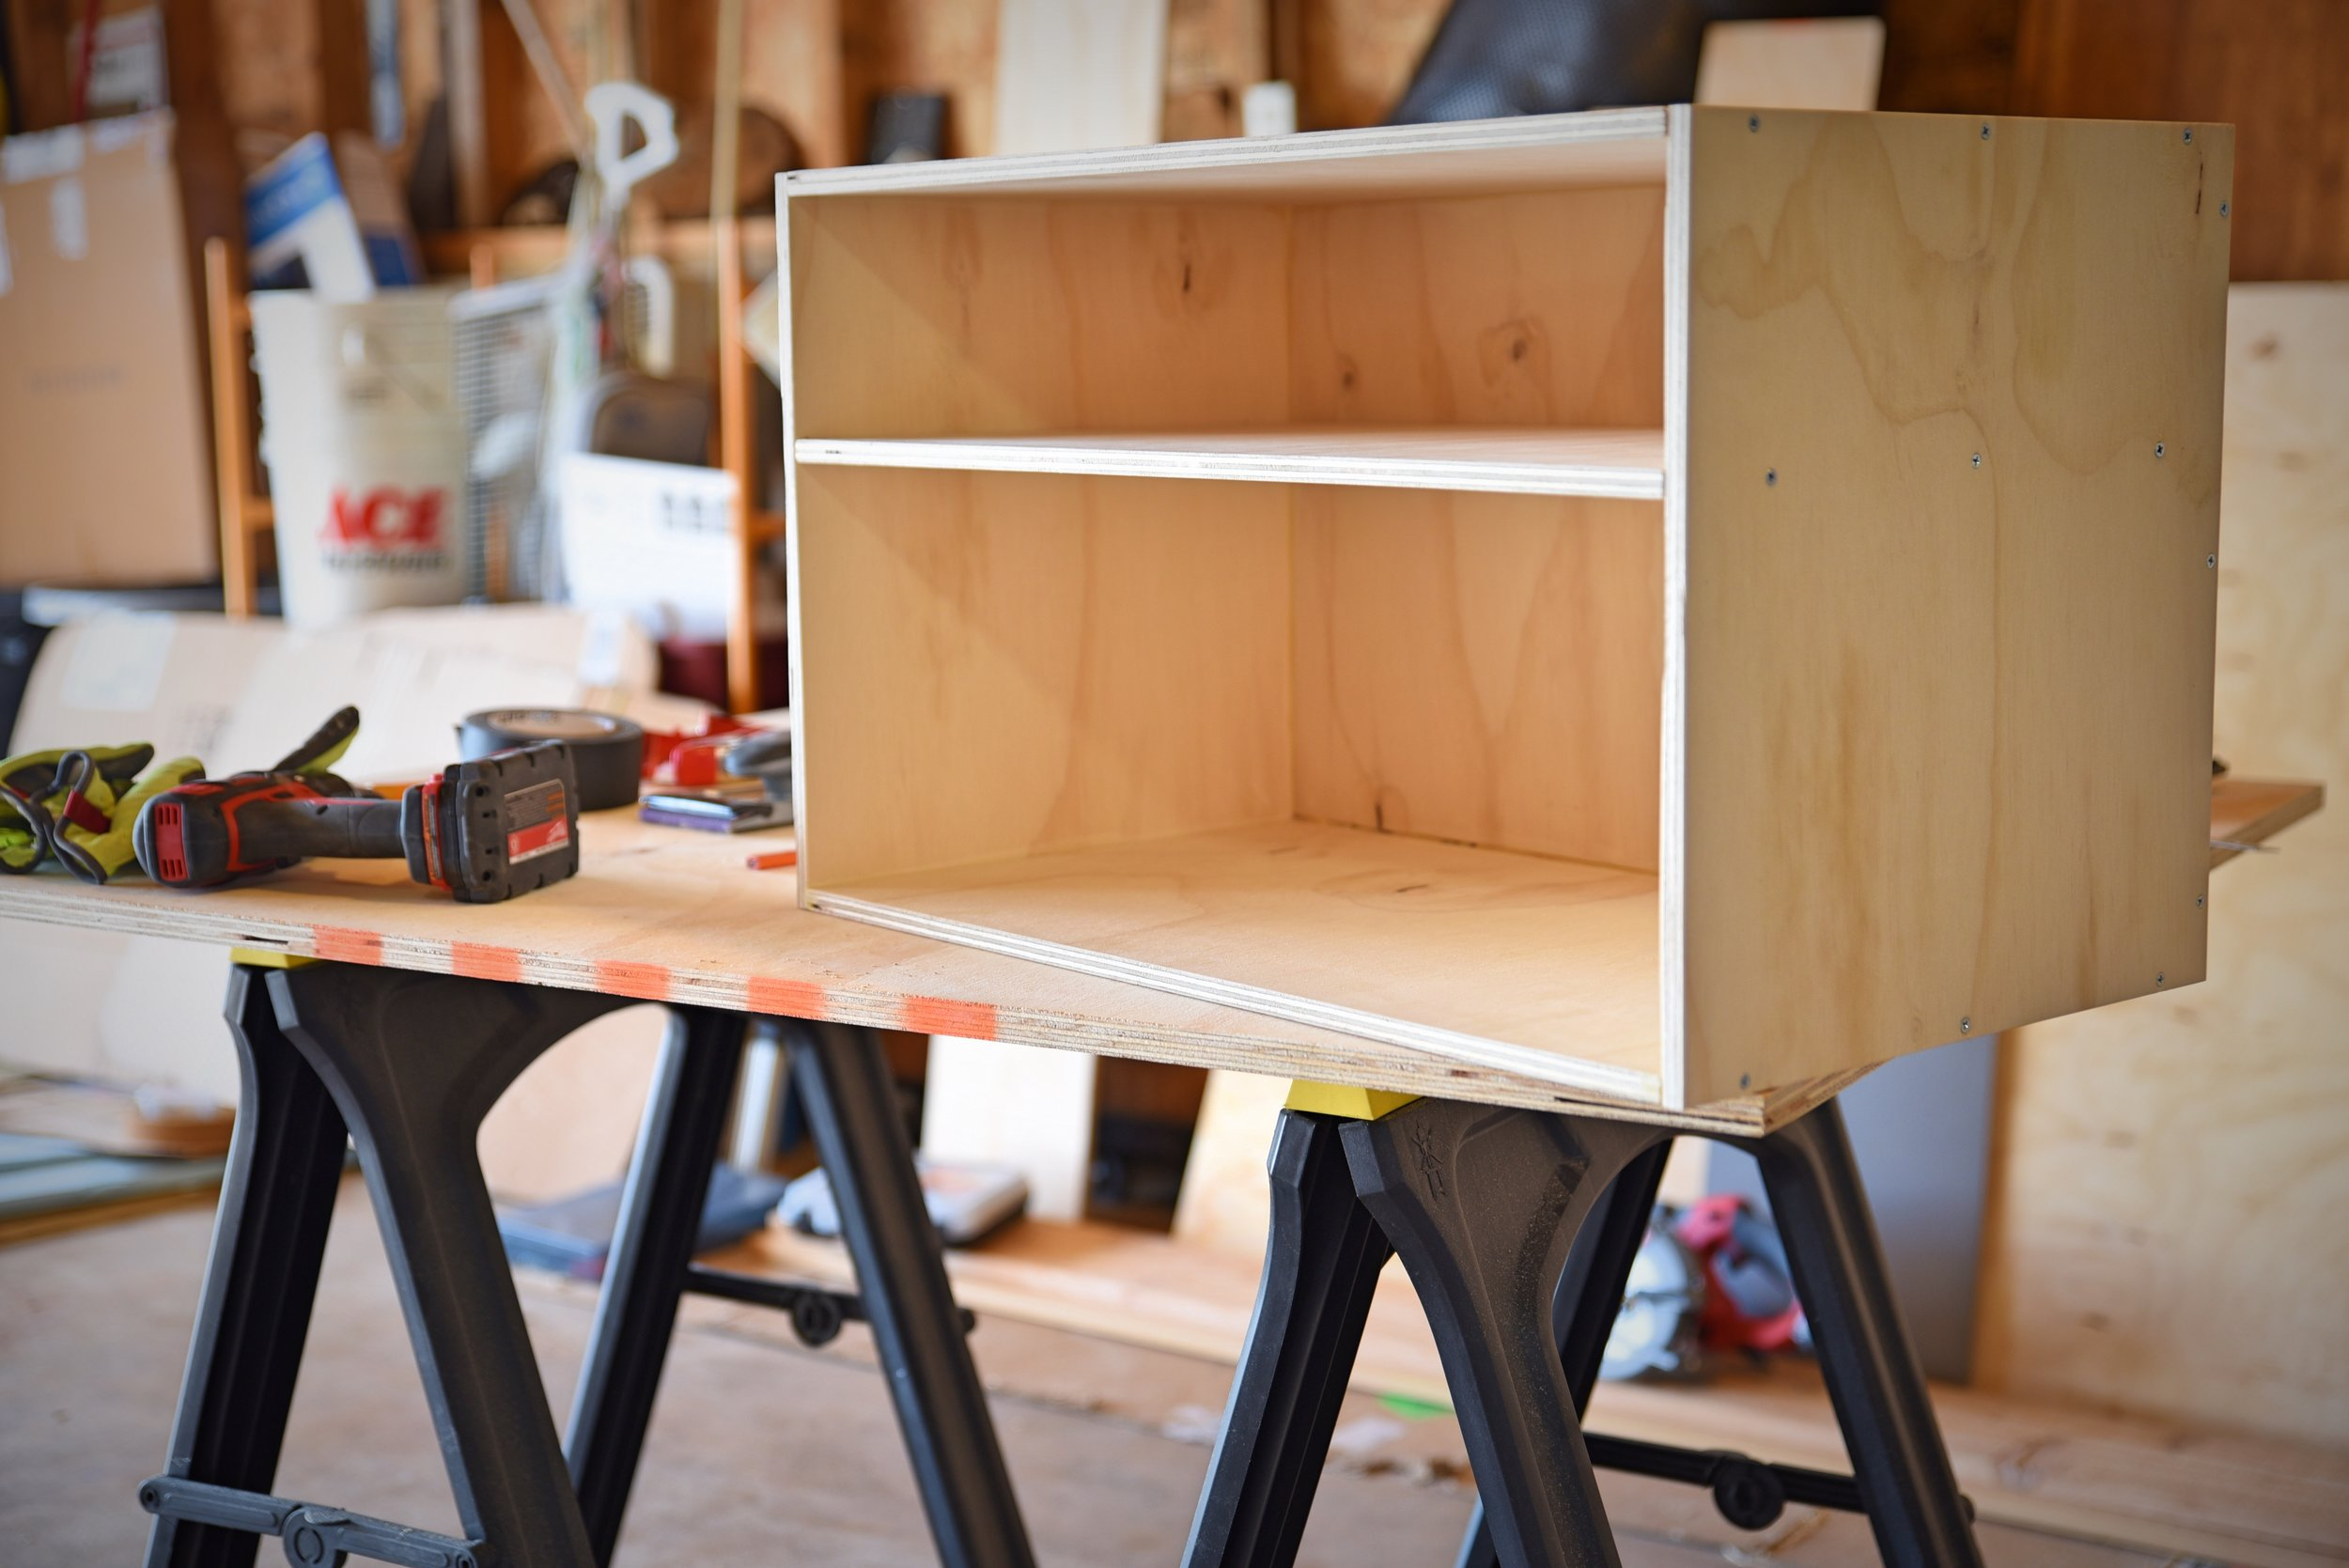 Our chuck box is a very simple plywood box with two sections and hinged doors. It's screwed together with countersunk screws and reinforced with wood glue.